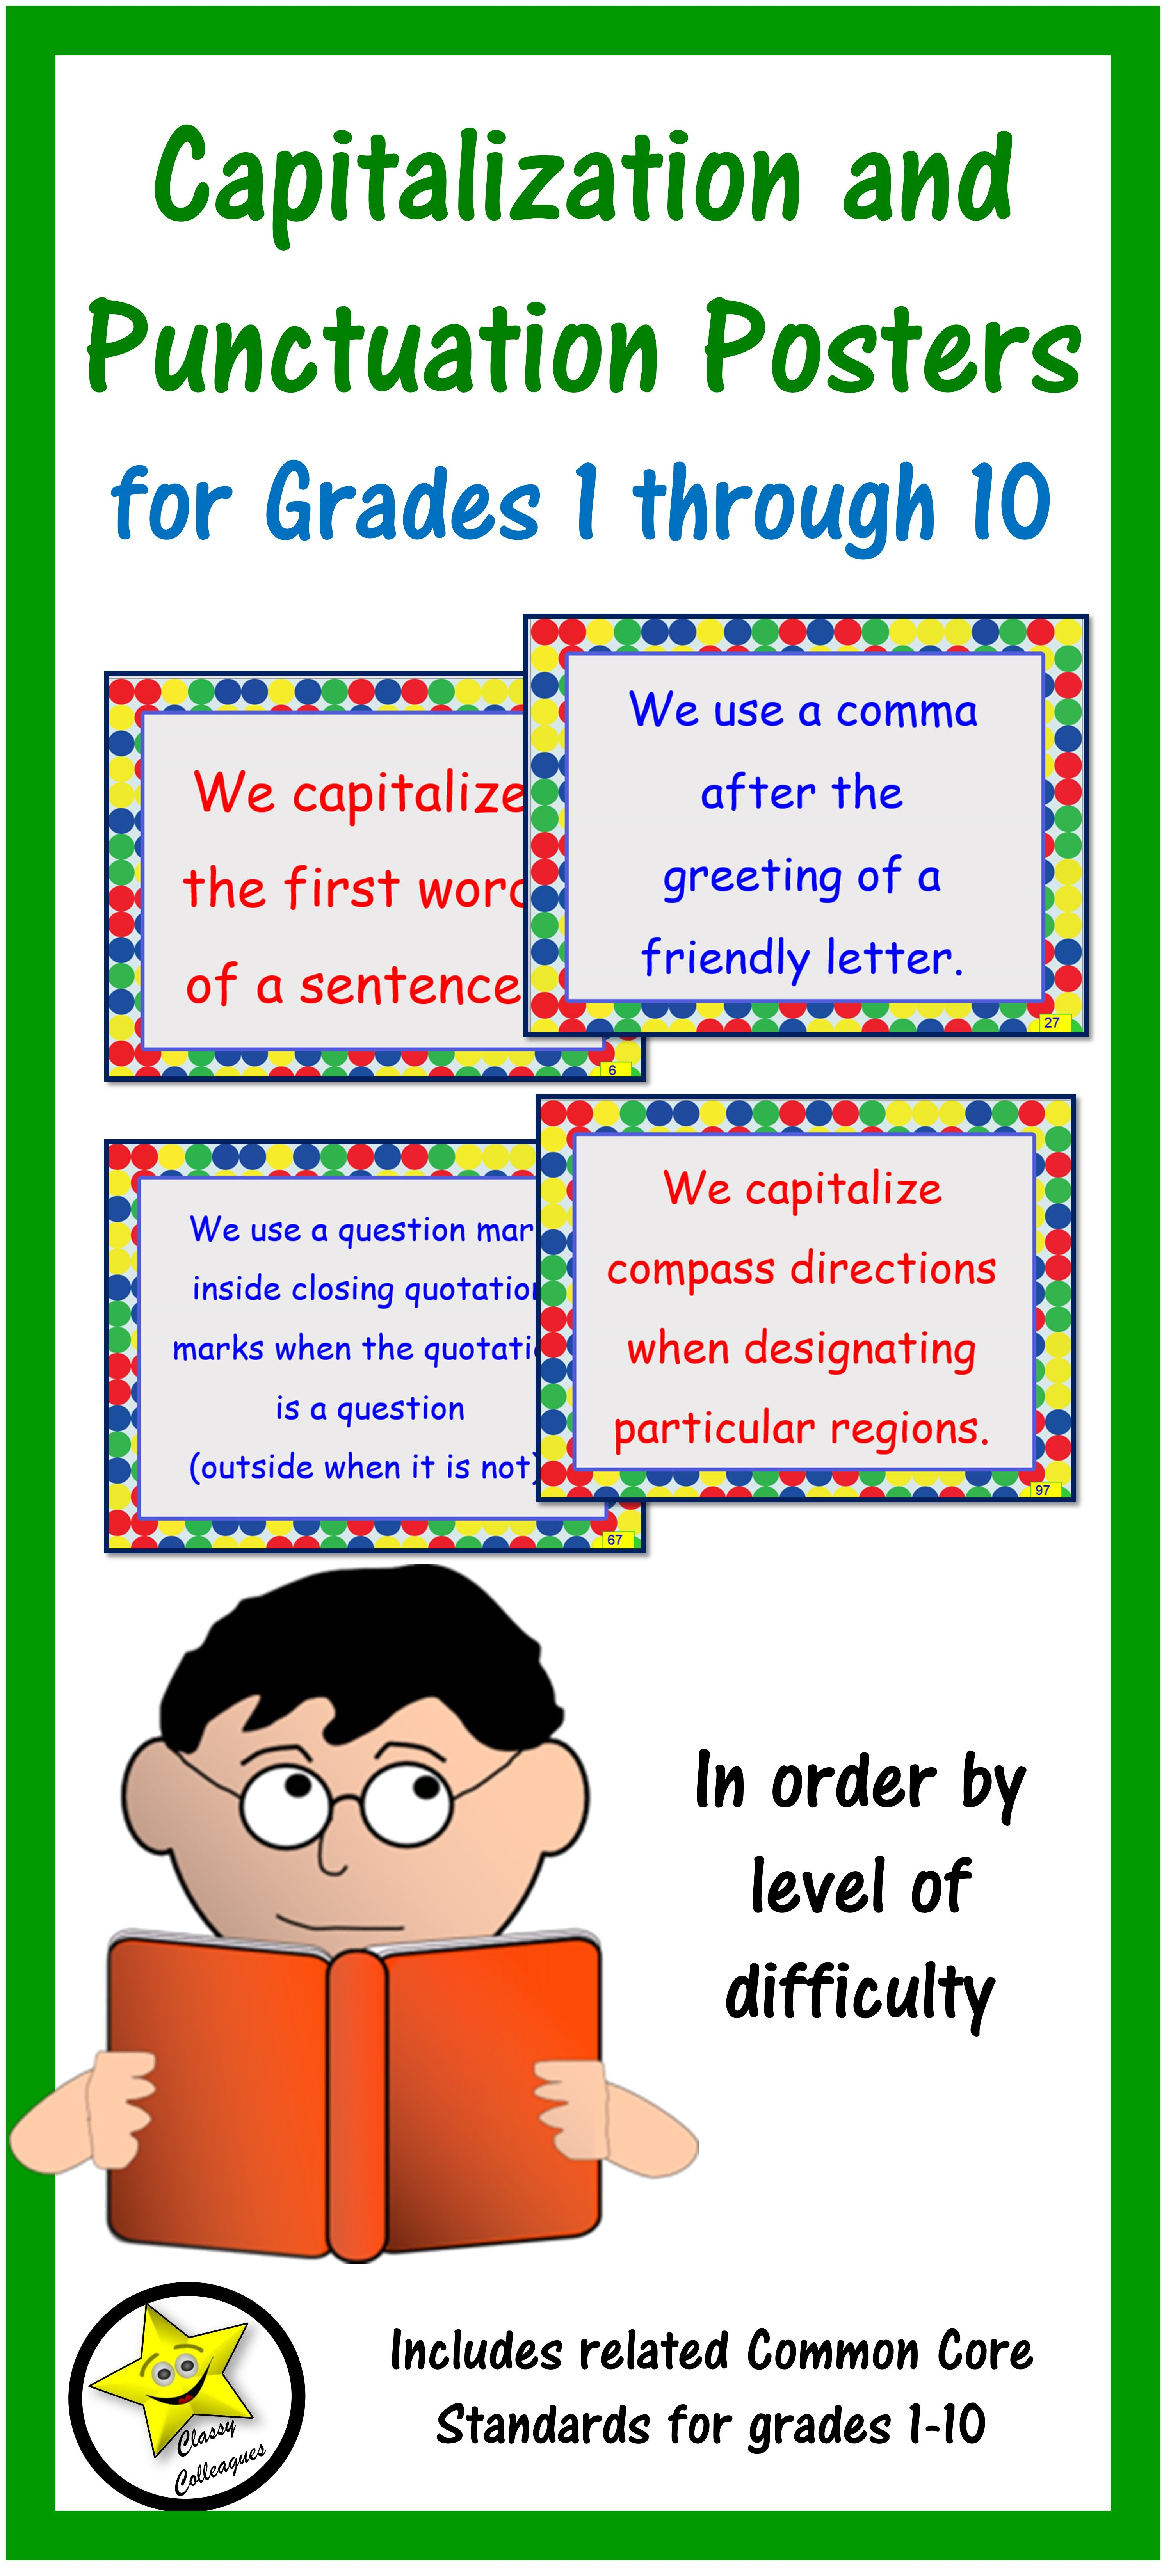 Capitalization and punctuation rule posters for all levels the posters are in order by level of difficulty and address capitalization and punctuation needs at all levels of learning skills build on each other to m4hsunfo